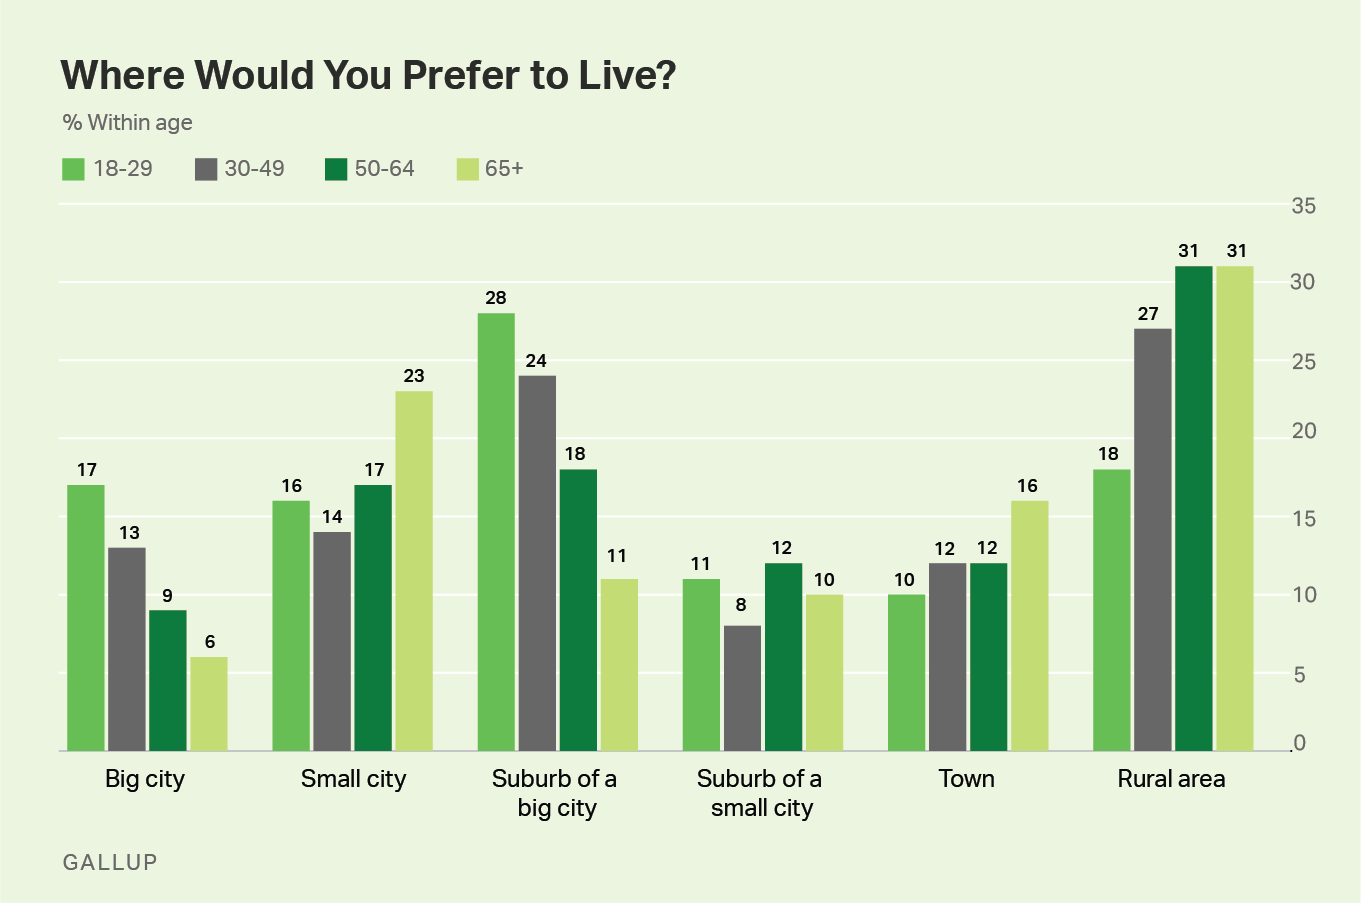 Bar graph. Americans aged 50-64 and 65+ prefer to live in rural areas, while those 18-29 favor a suburb of a big city.